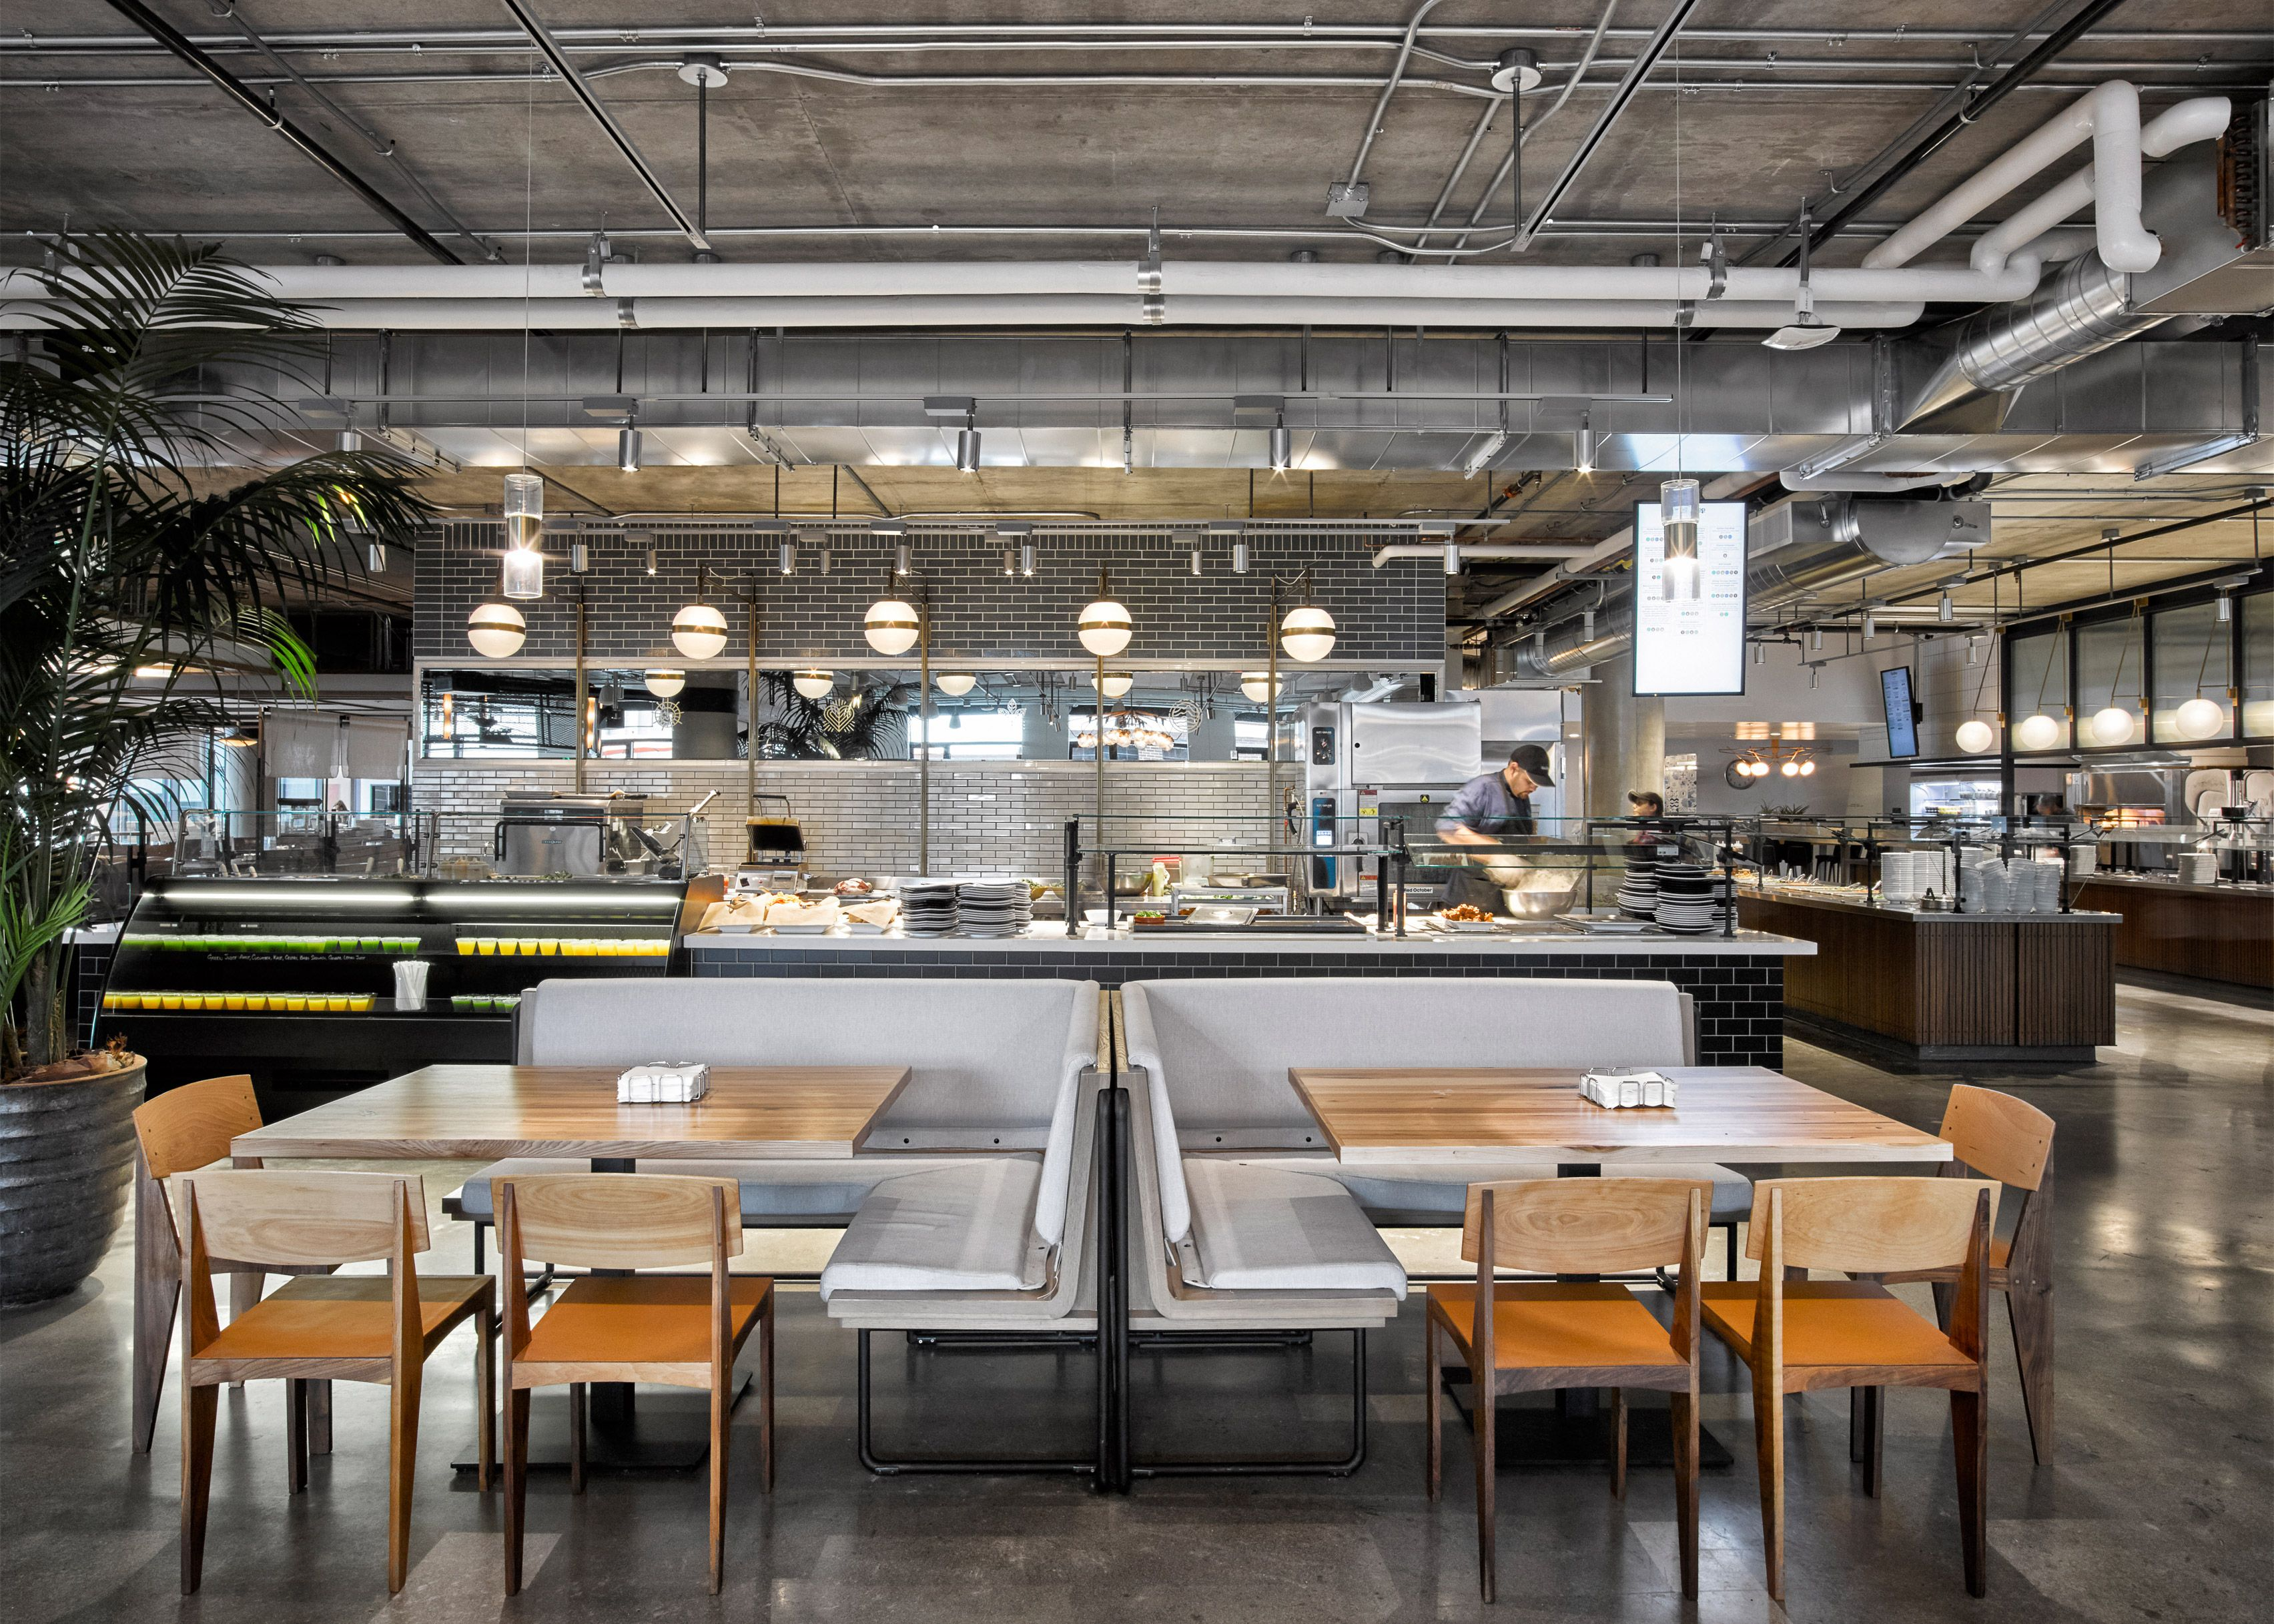 Dropbox opens industrial-style cafeteria at California headquarters